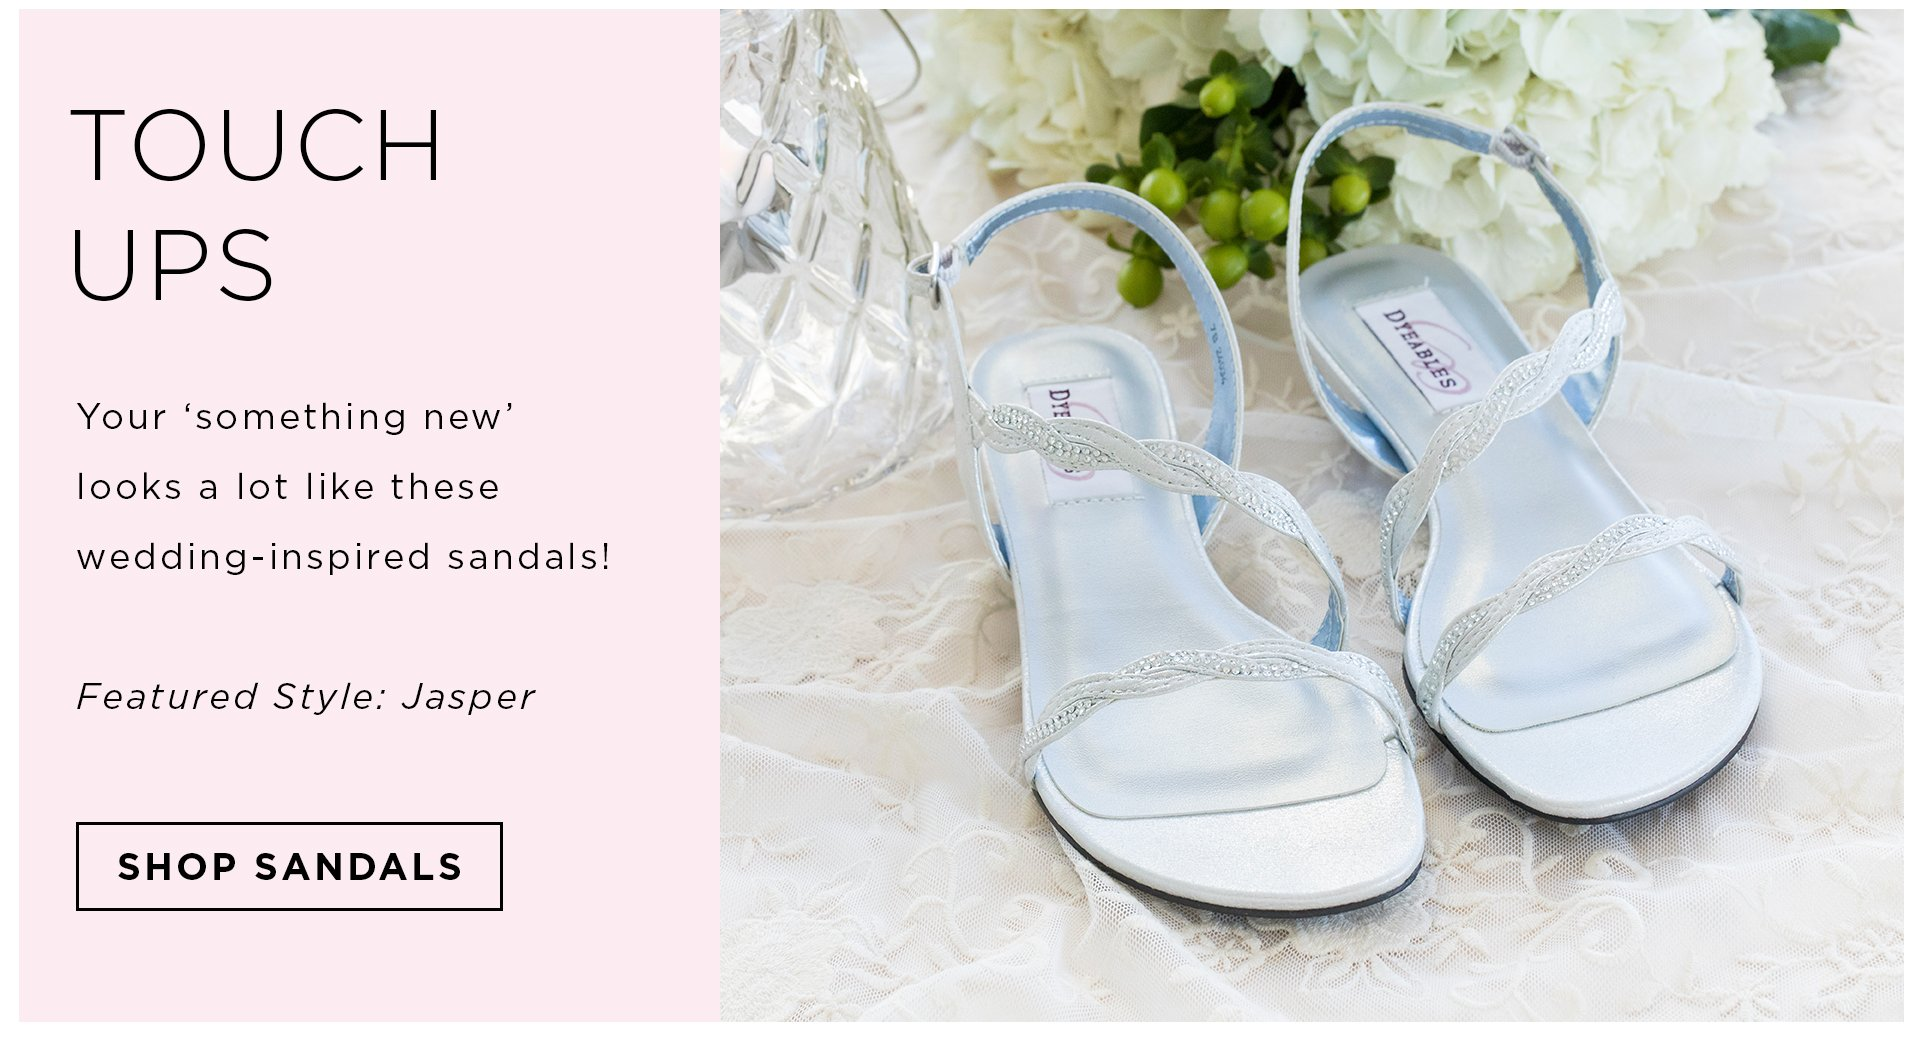 Wedding Shoes: Bridal Flats, Sandals, Heels & More | Zappos.com